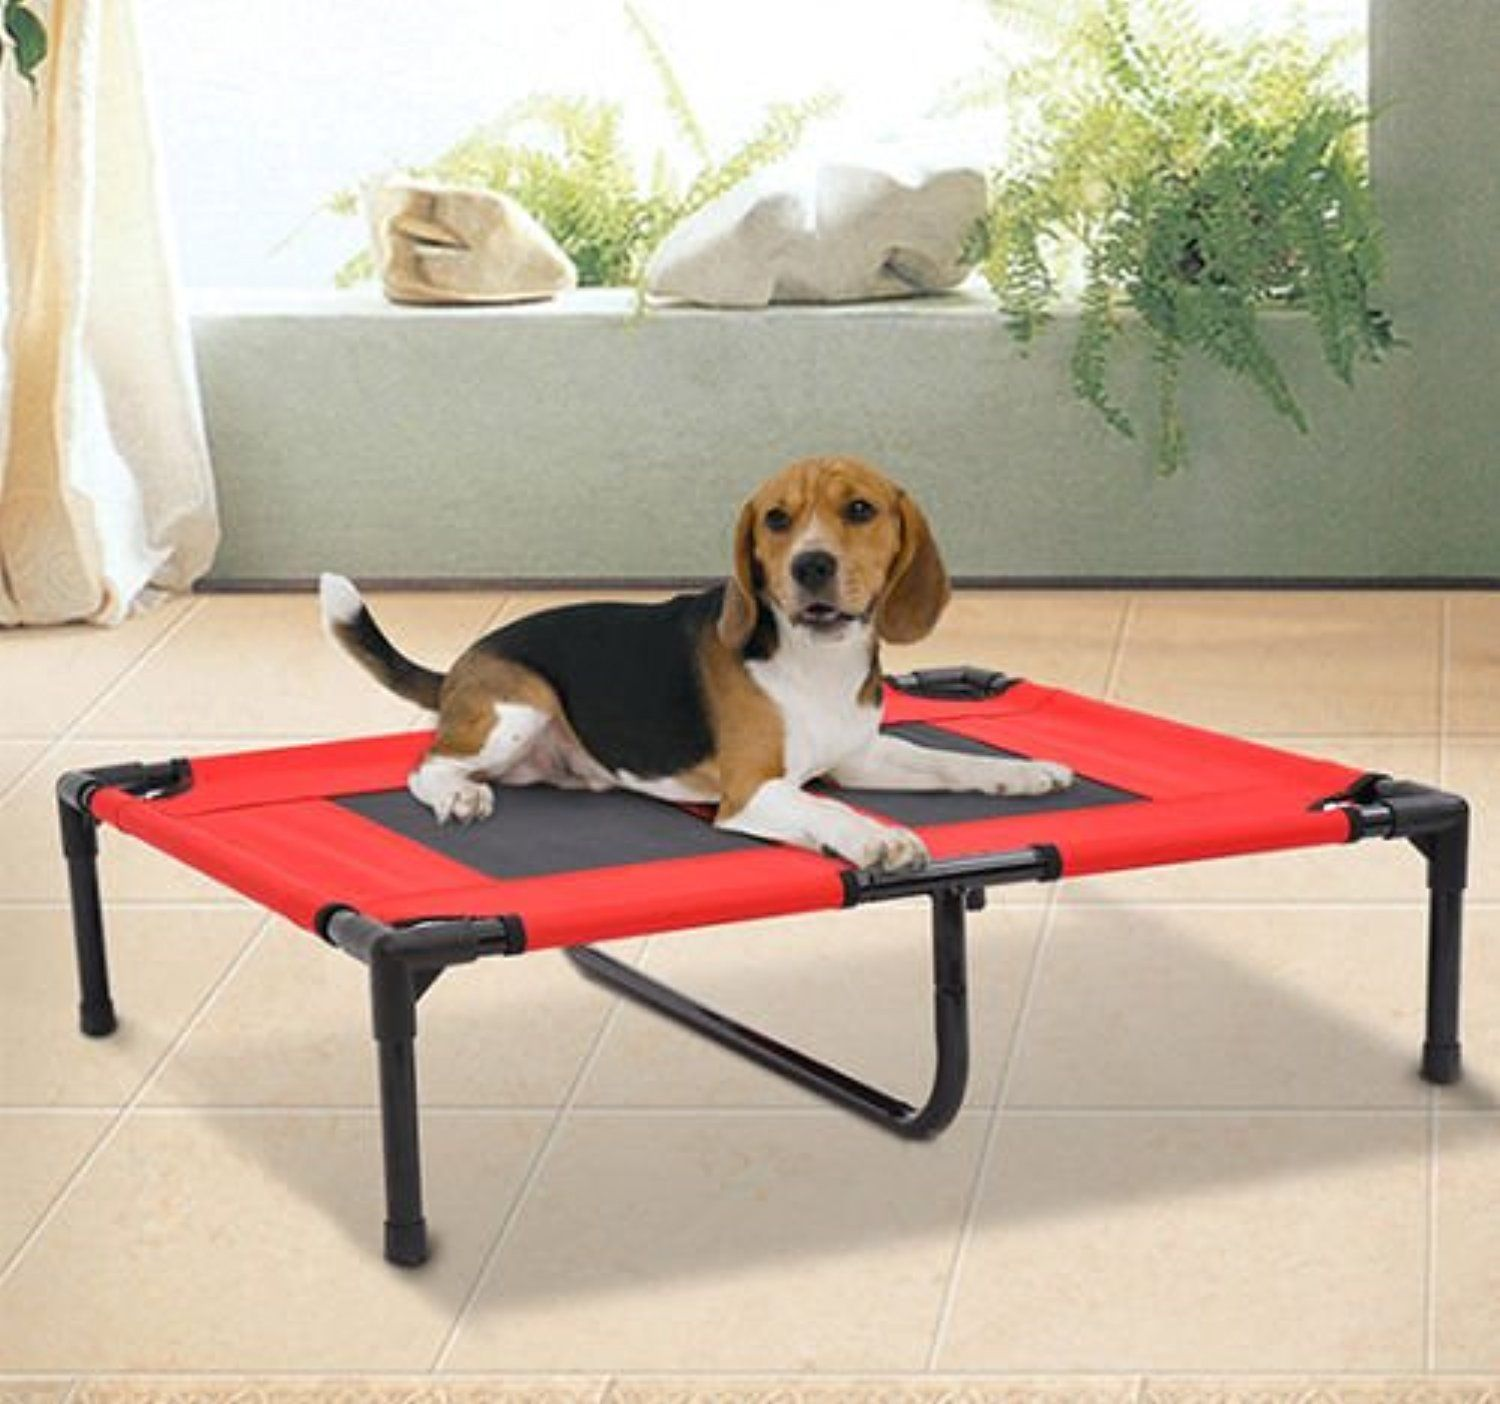 new pawhut indoor outdoor portable dog cat sleep bed elevated